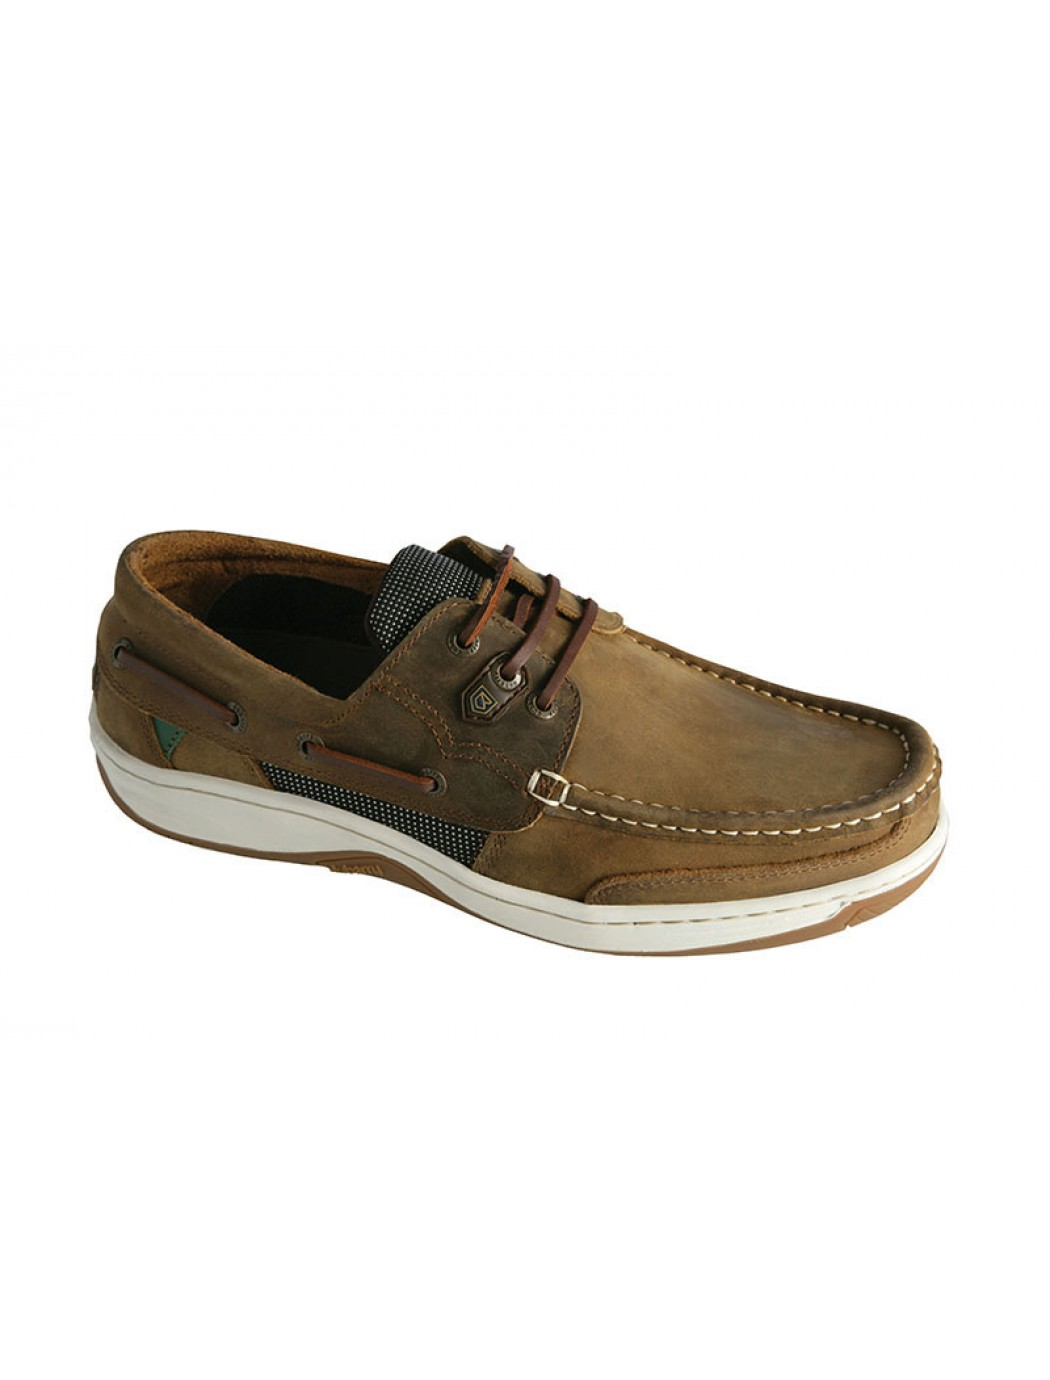 regatta-mens-decks-brown